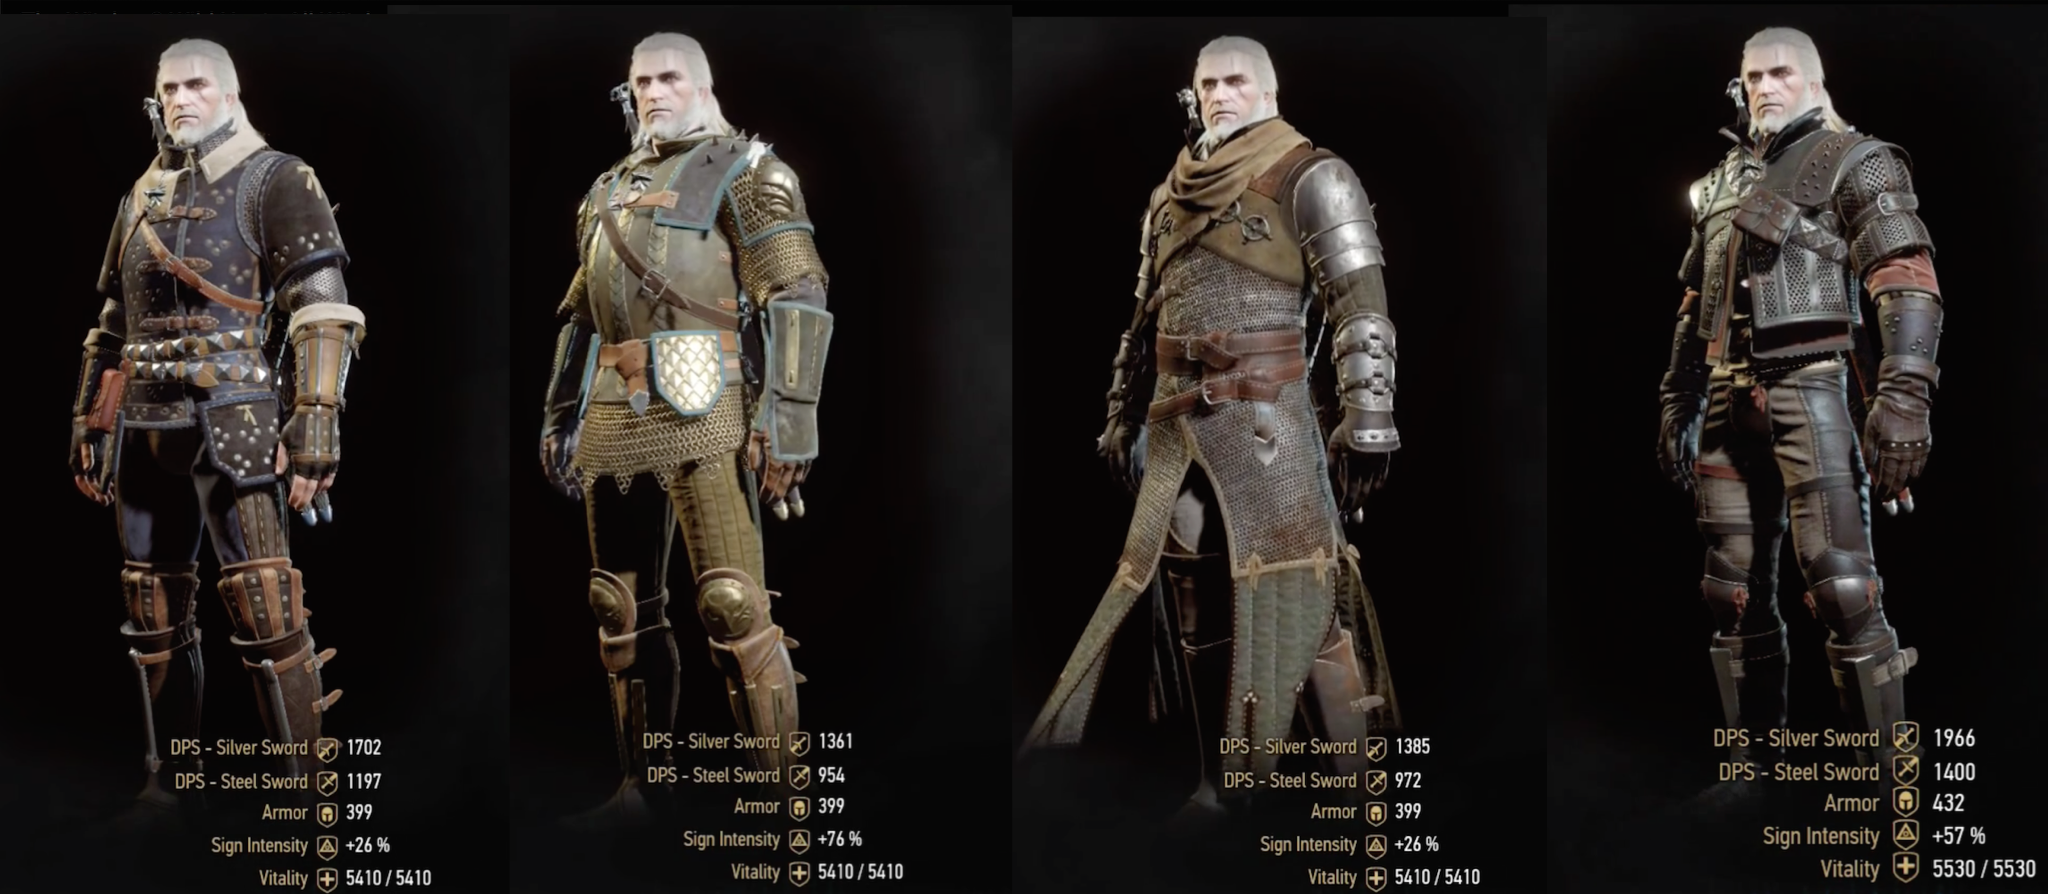 witcher 3 armor - Google 검색